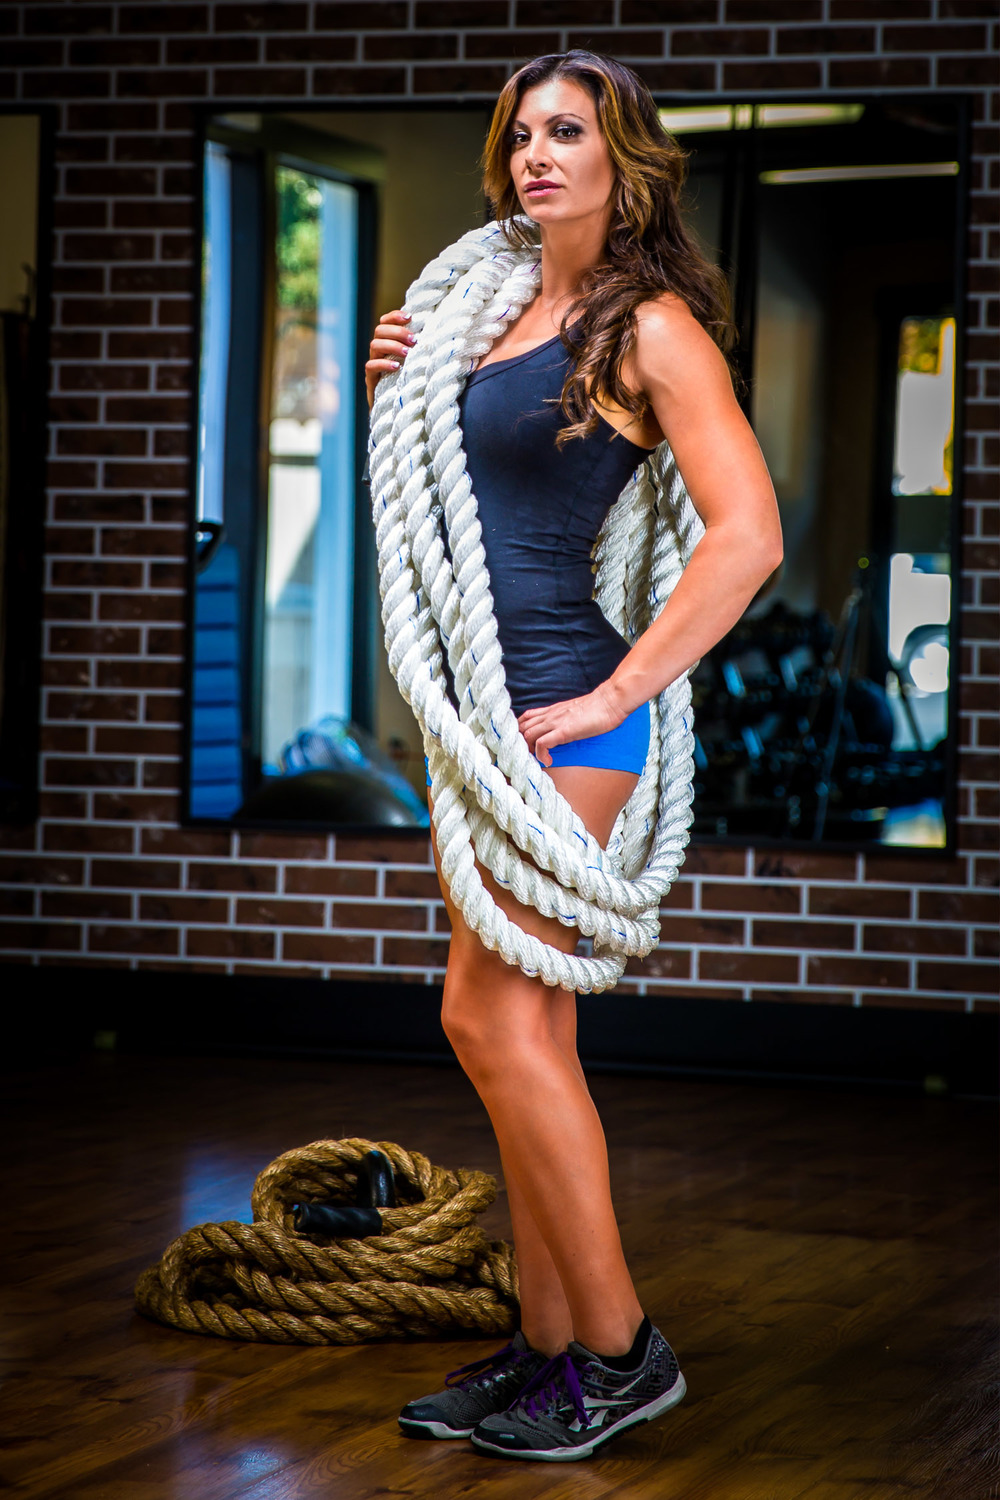 Battle Rope White Fitness Solutions Llc